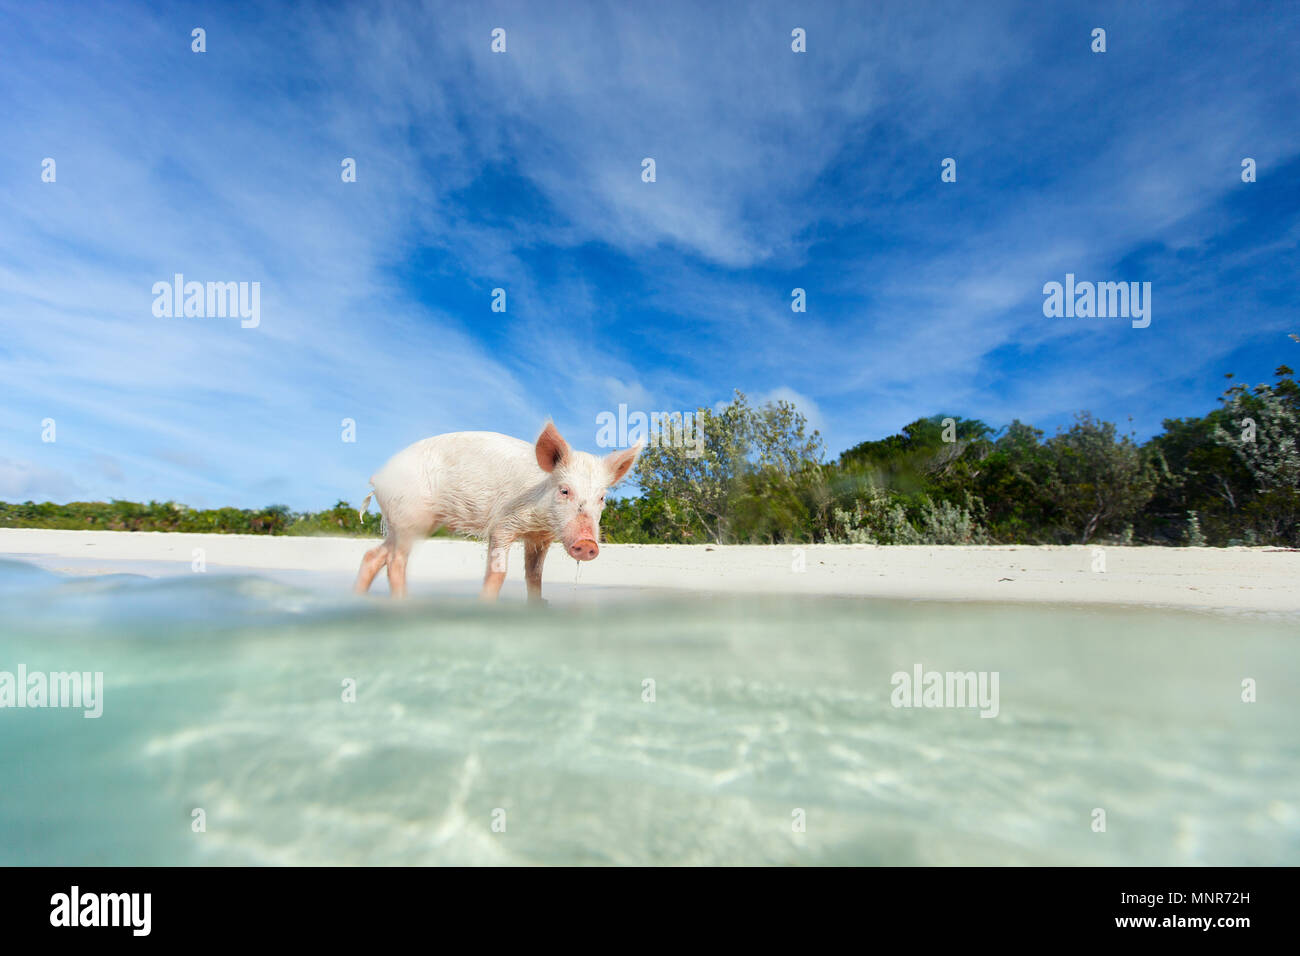 Little piglet in a water at beach on Exuma island Bahamas - Stock Image